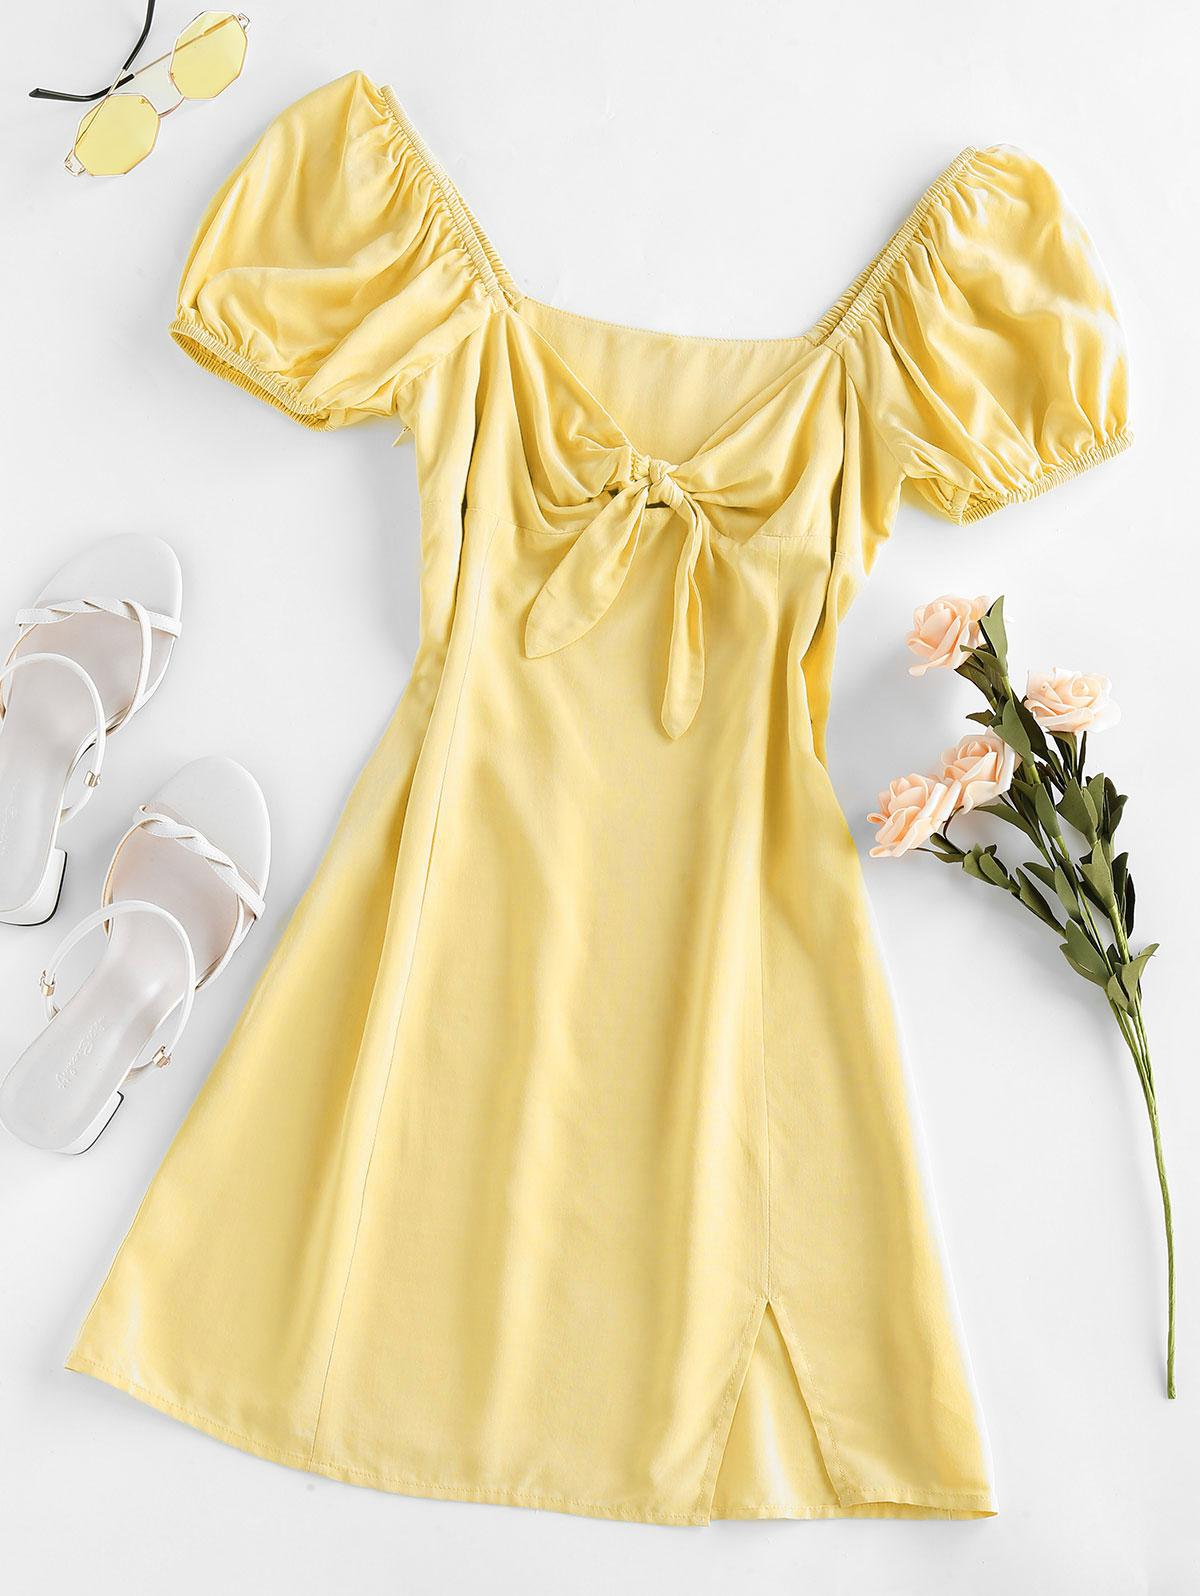 ZAFUL Knot Slit Milkmaid Dress